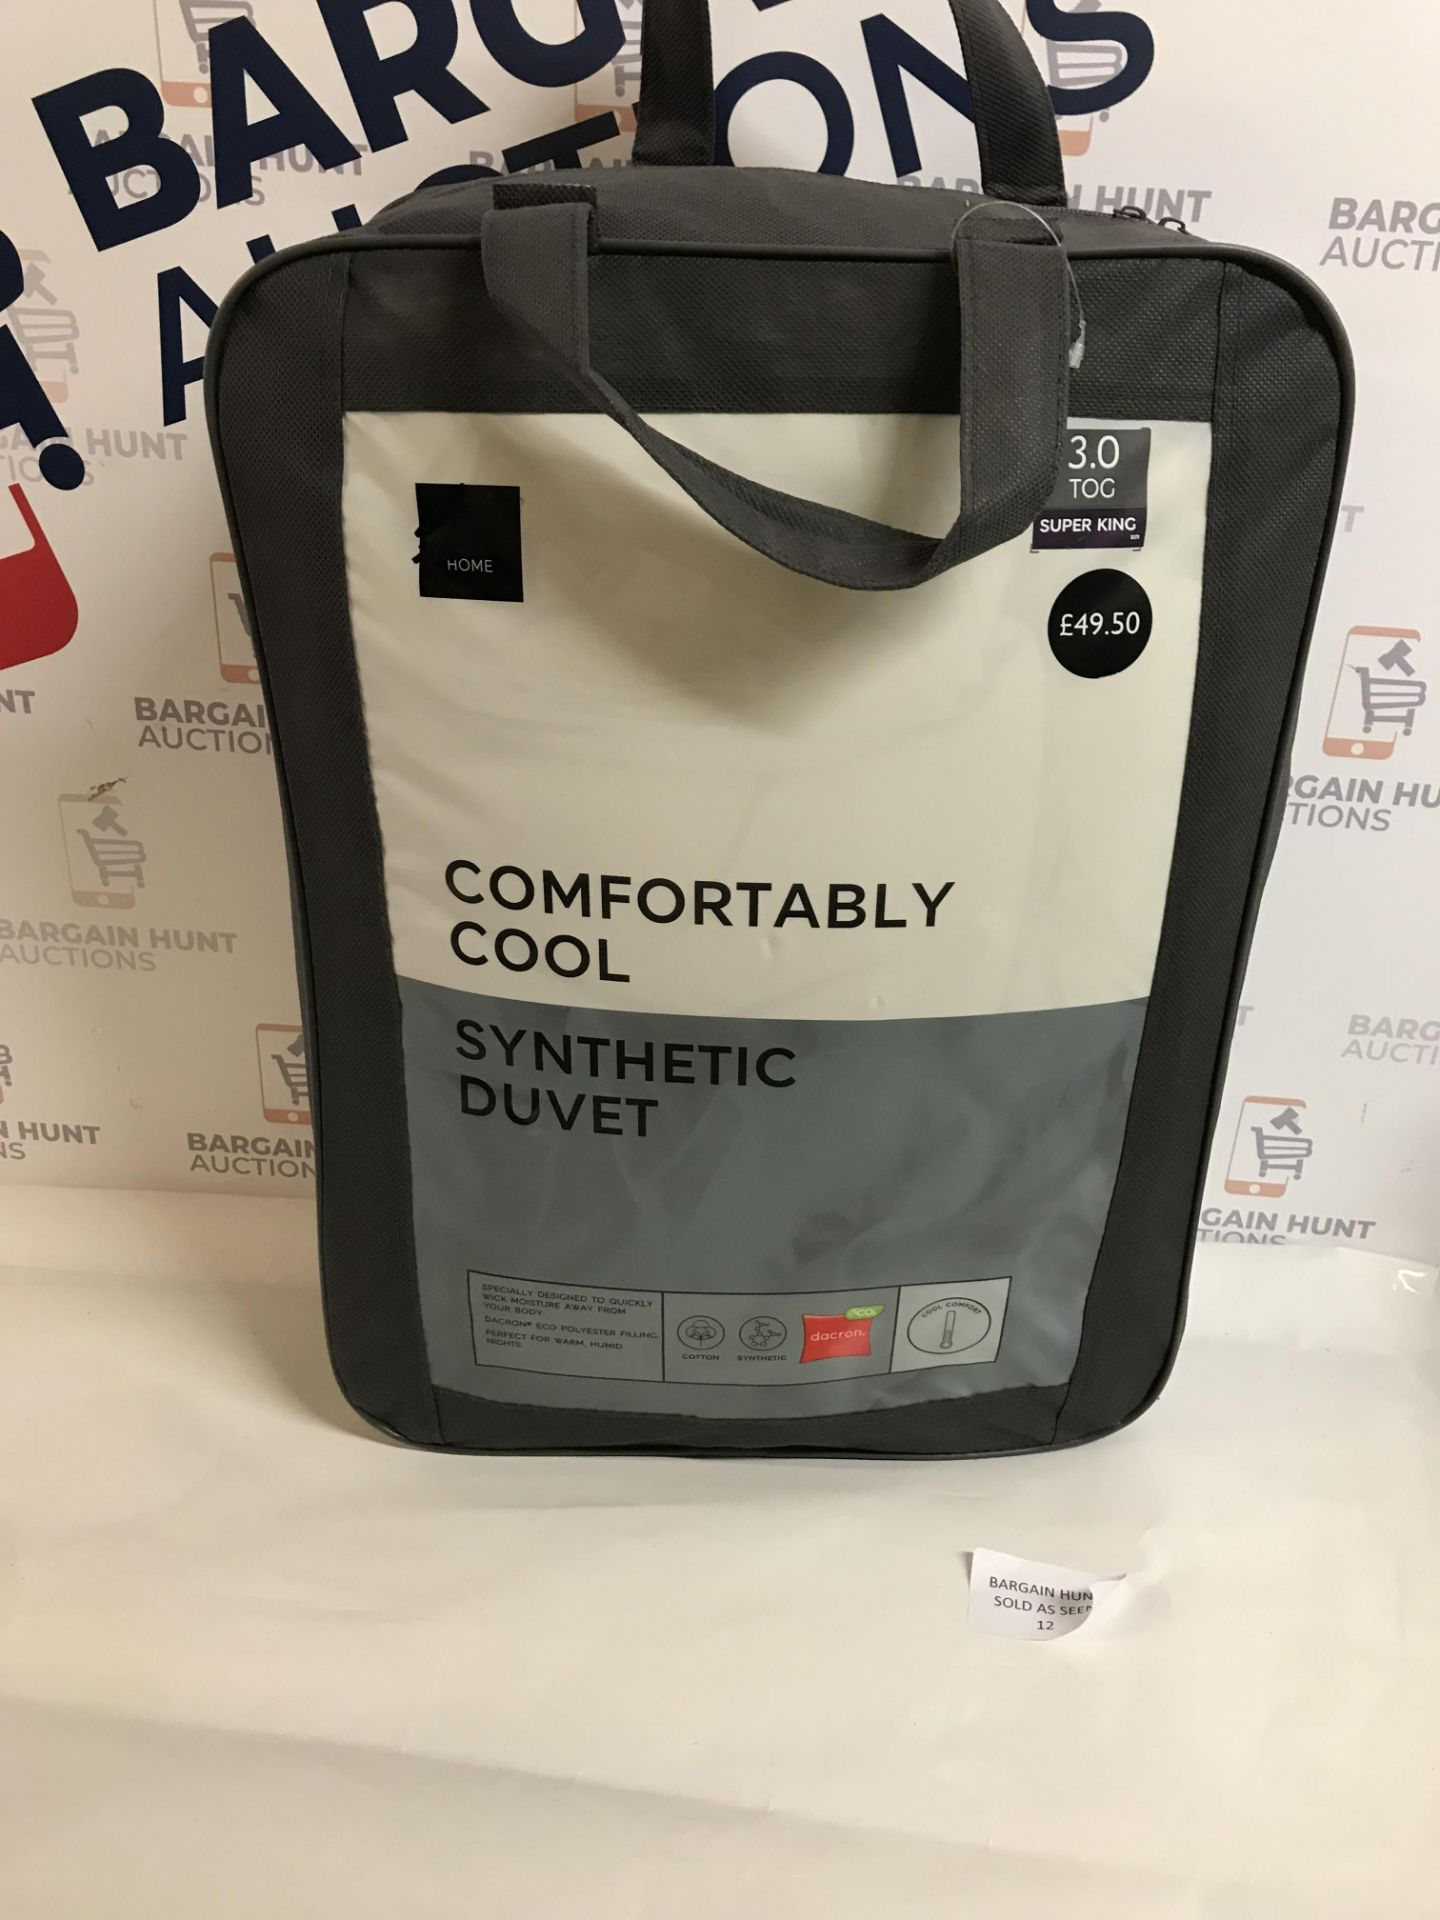 Lot 12 - Comfortably Cool Synthetic 3.0 Tog Duvet, Super King